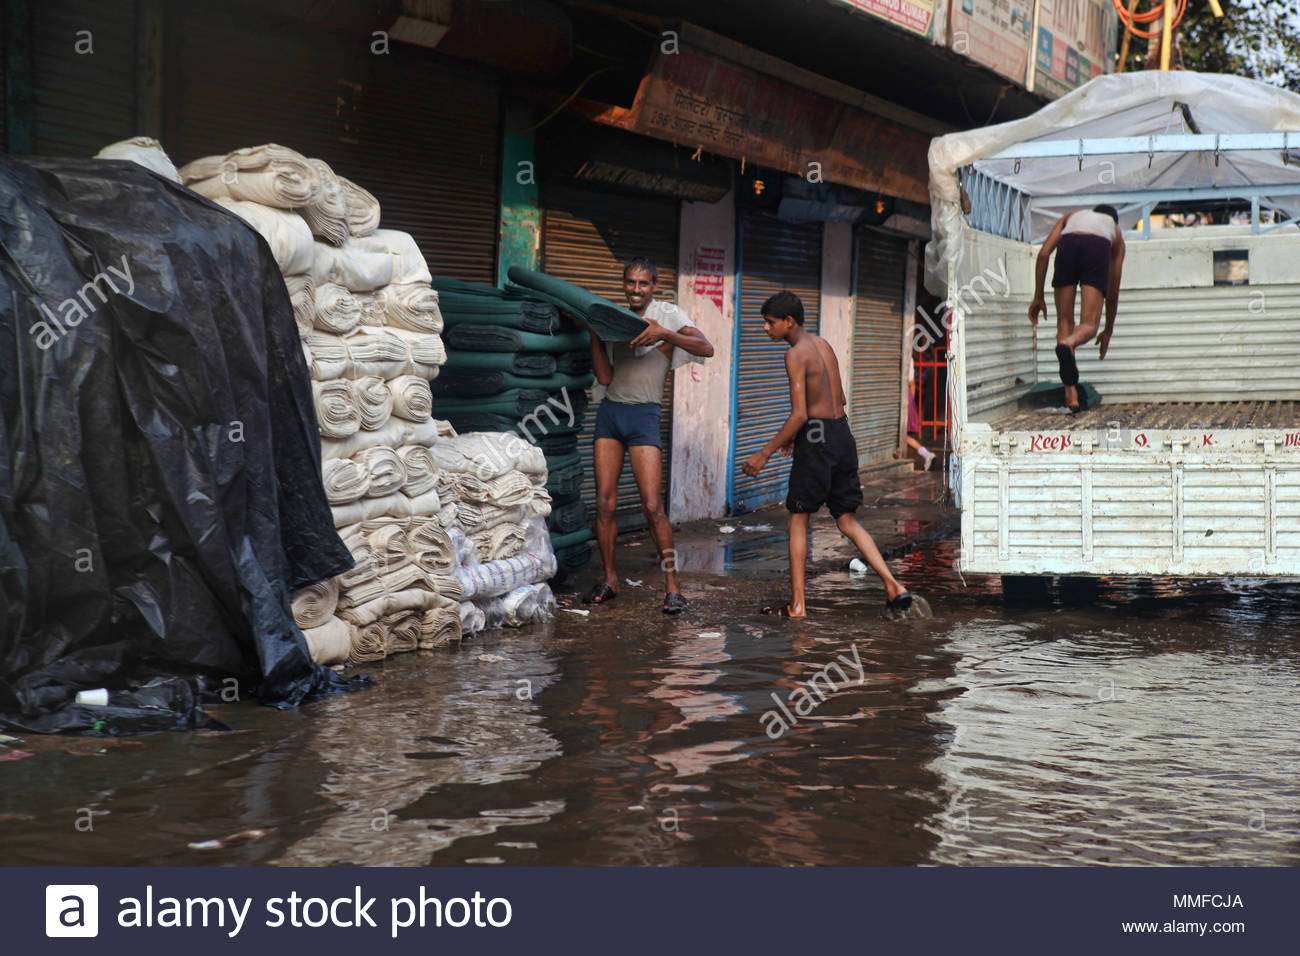 Men load bolts of cloth onto a truck from a flooded street corner during the monsoon season in Delhi. - Stock Image